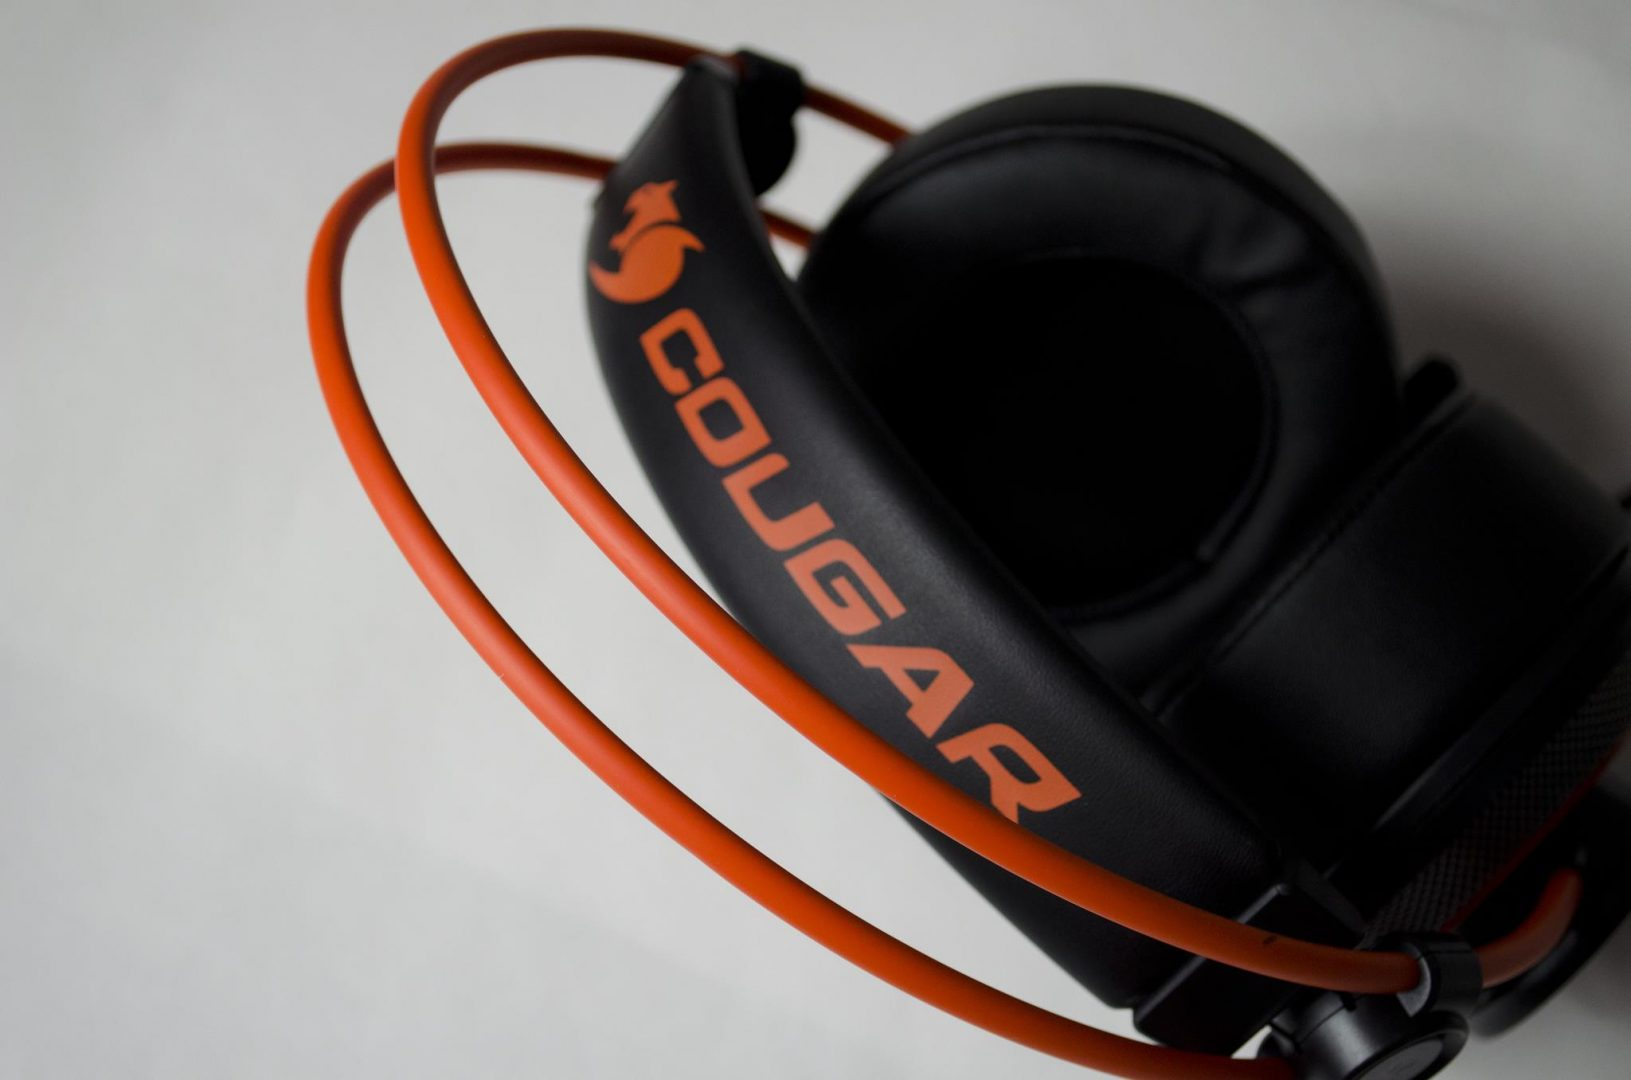 cougar immera headset review_12